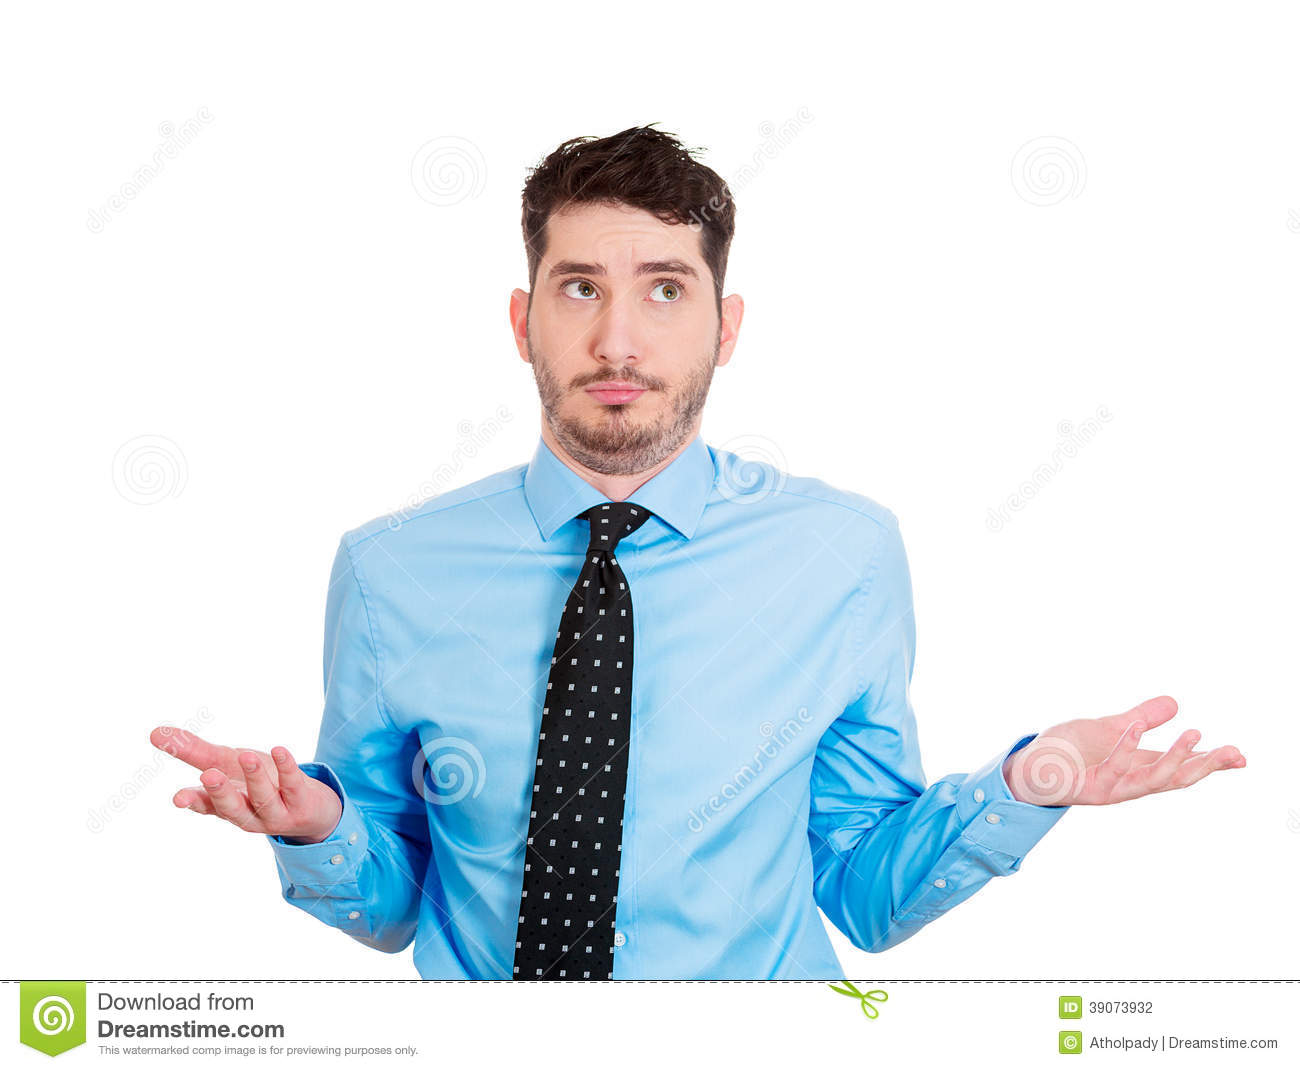 So What, Who Cares, I Don't Know Stock Photo - Image: 39073932